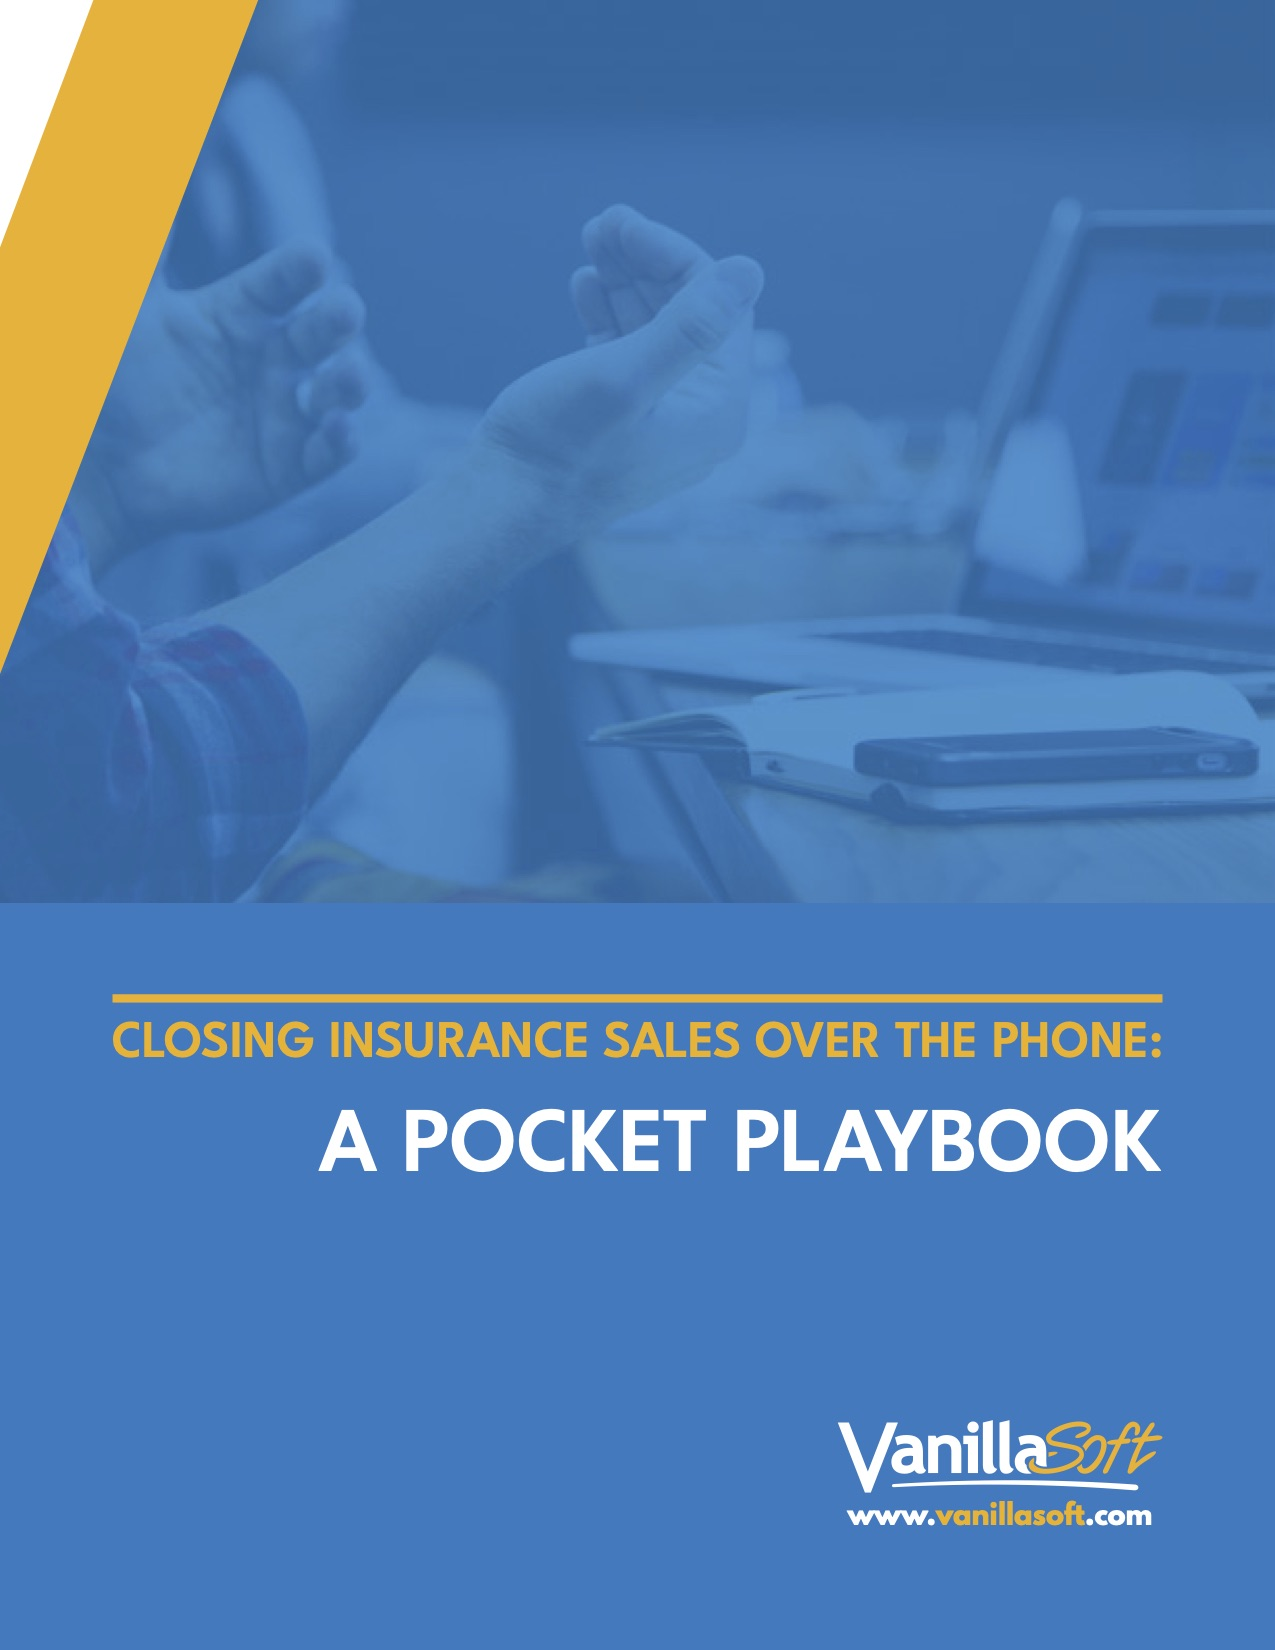 eBook-Closing-Insurance-Sales-Over-Phone-Cover